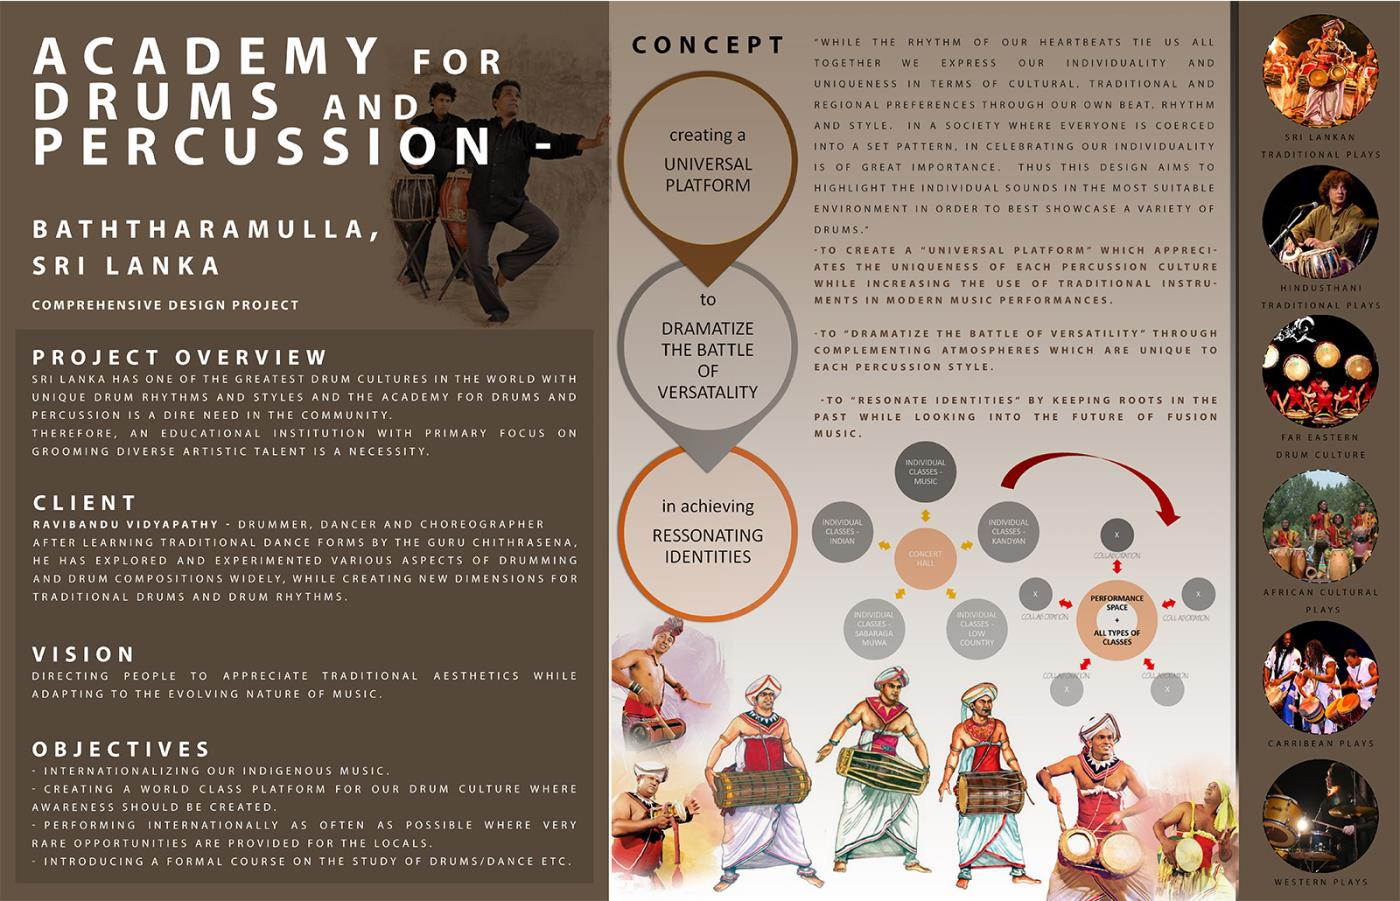 Academy for Drums and Percussion – Sri Lanka